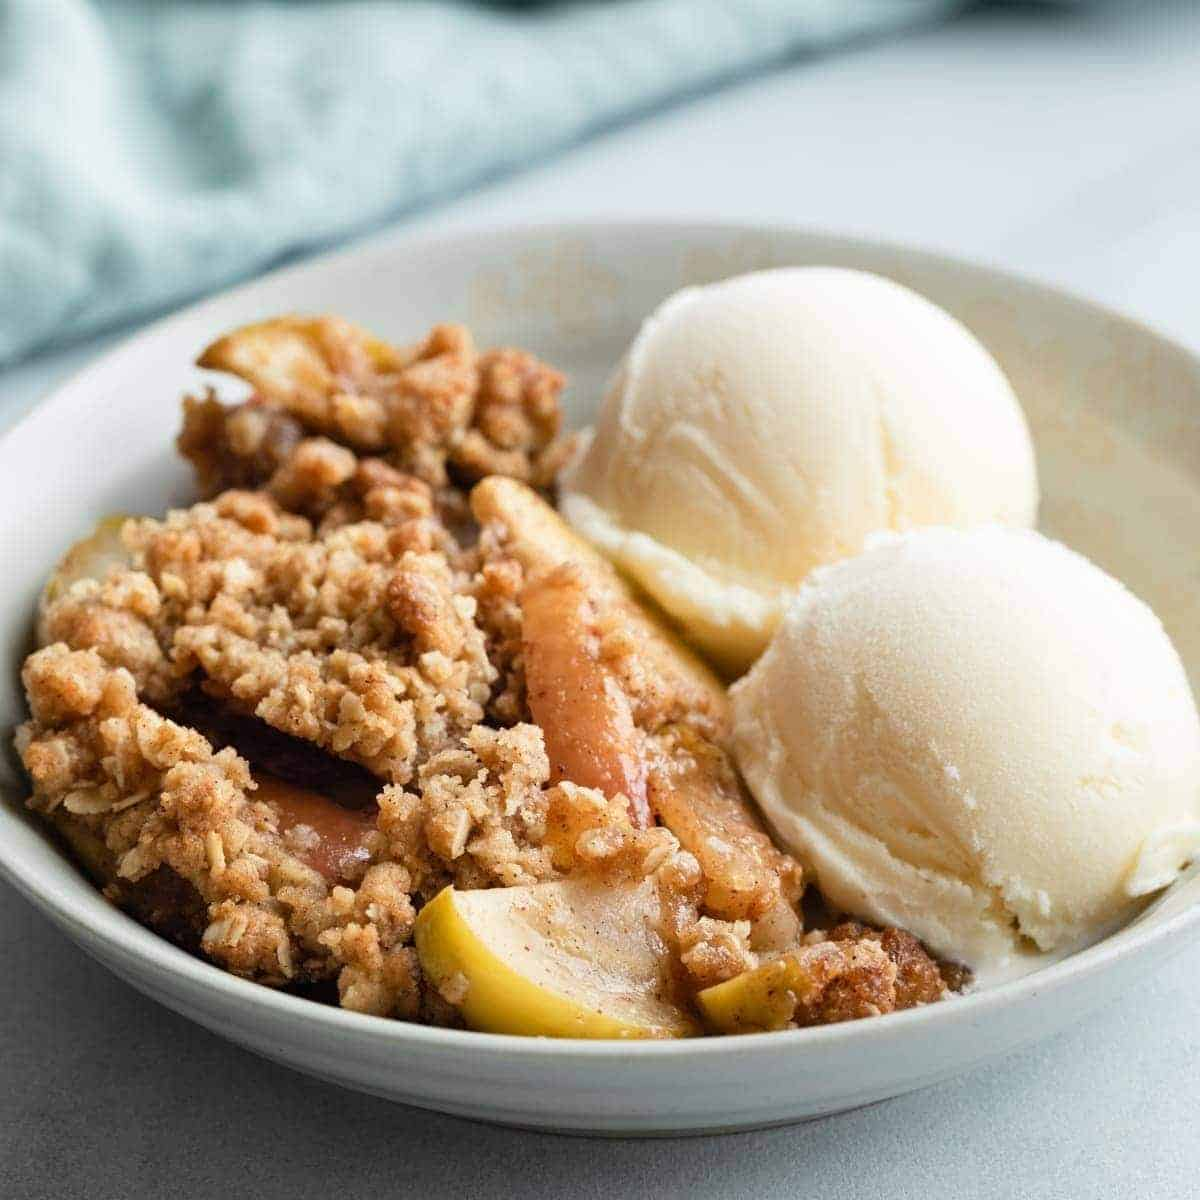 side view of apple crisp in grey bowl with 2 scoops of vanilla ice cream